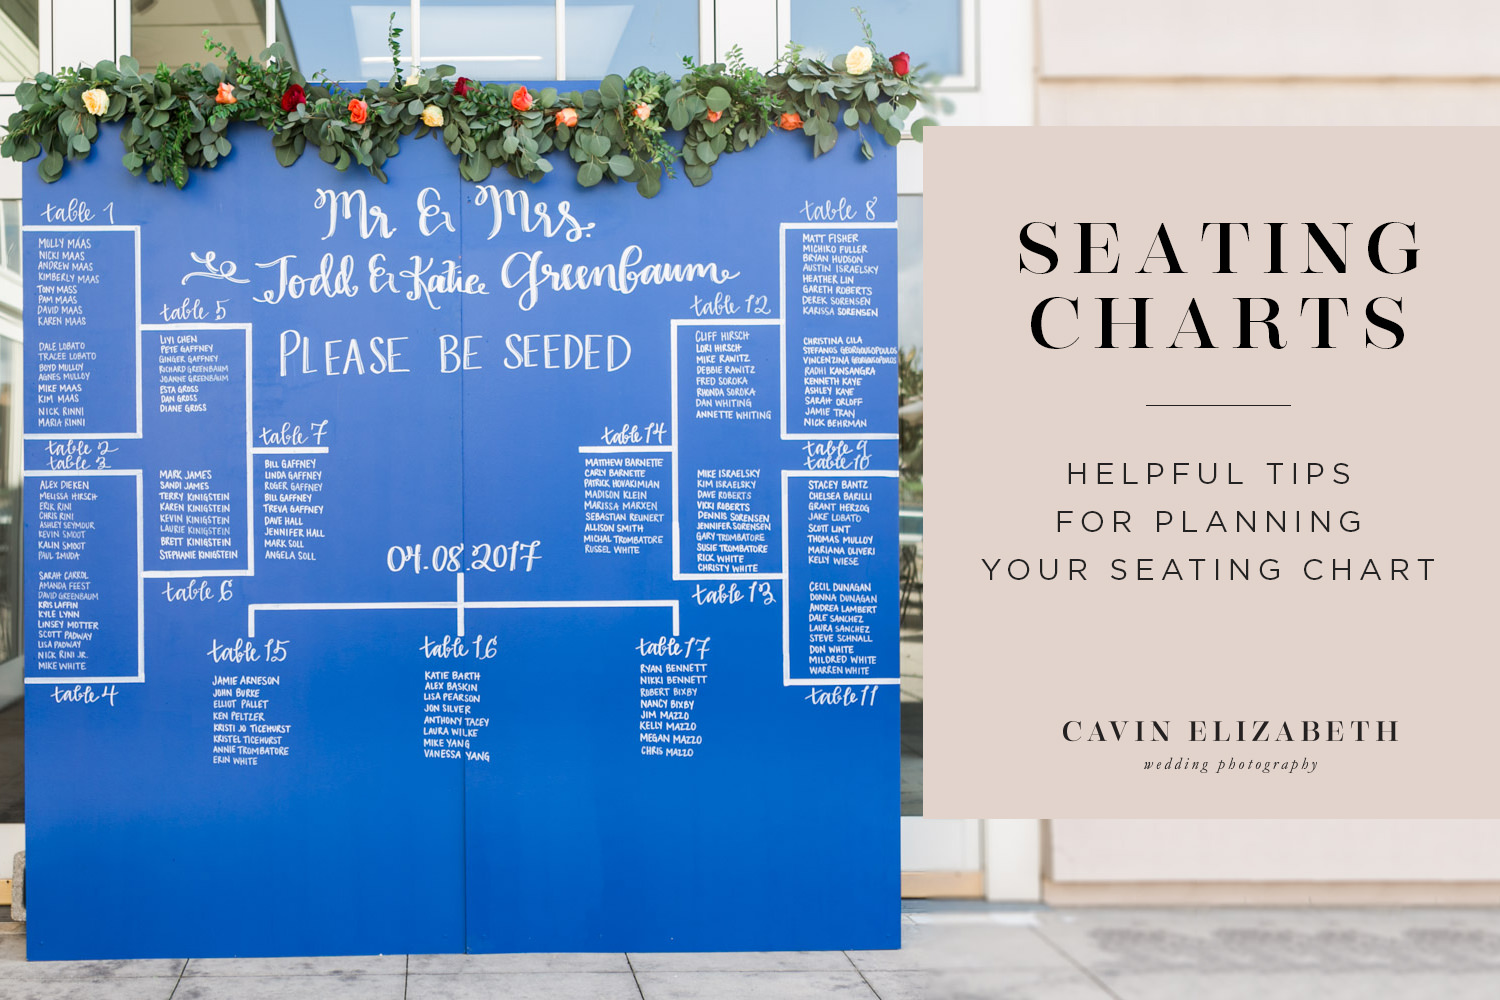 Helpful Tips for Planning Your Wedding Seating Chart